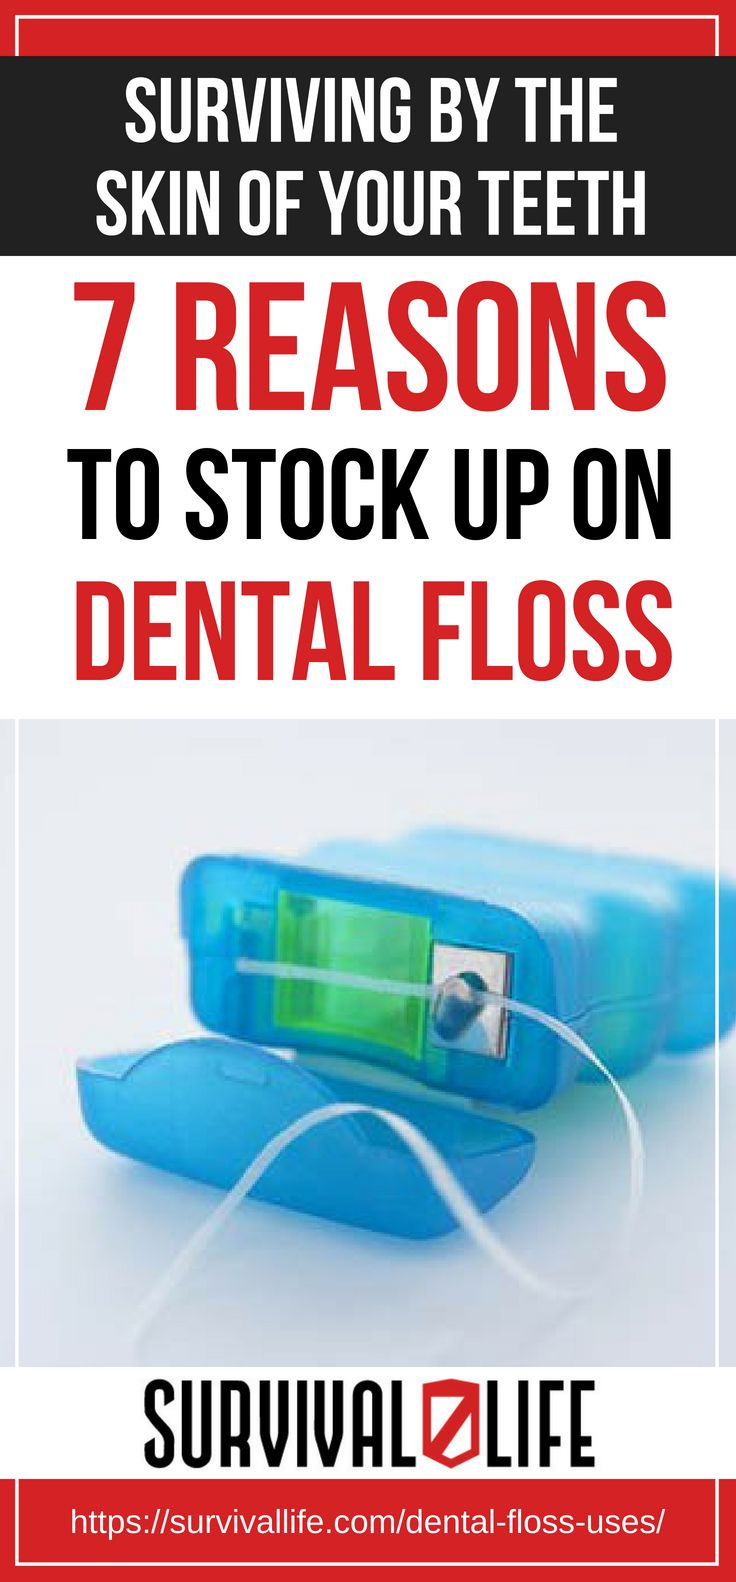 Placard | Surviving By The Skin Of Your Teeth: 7 Reasons To Stock Up On Dental Floss